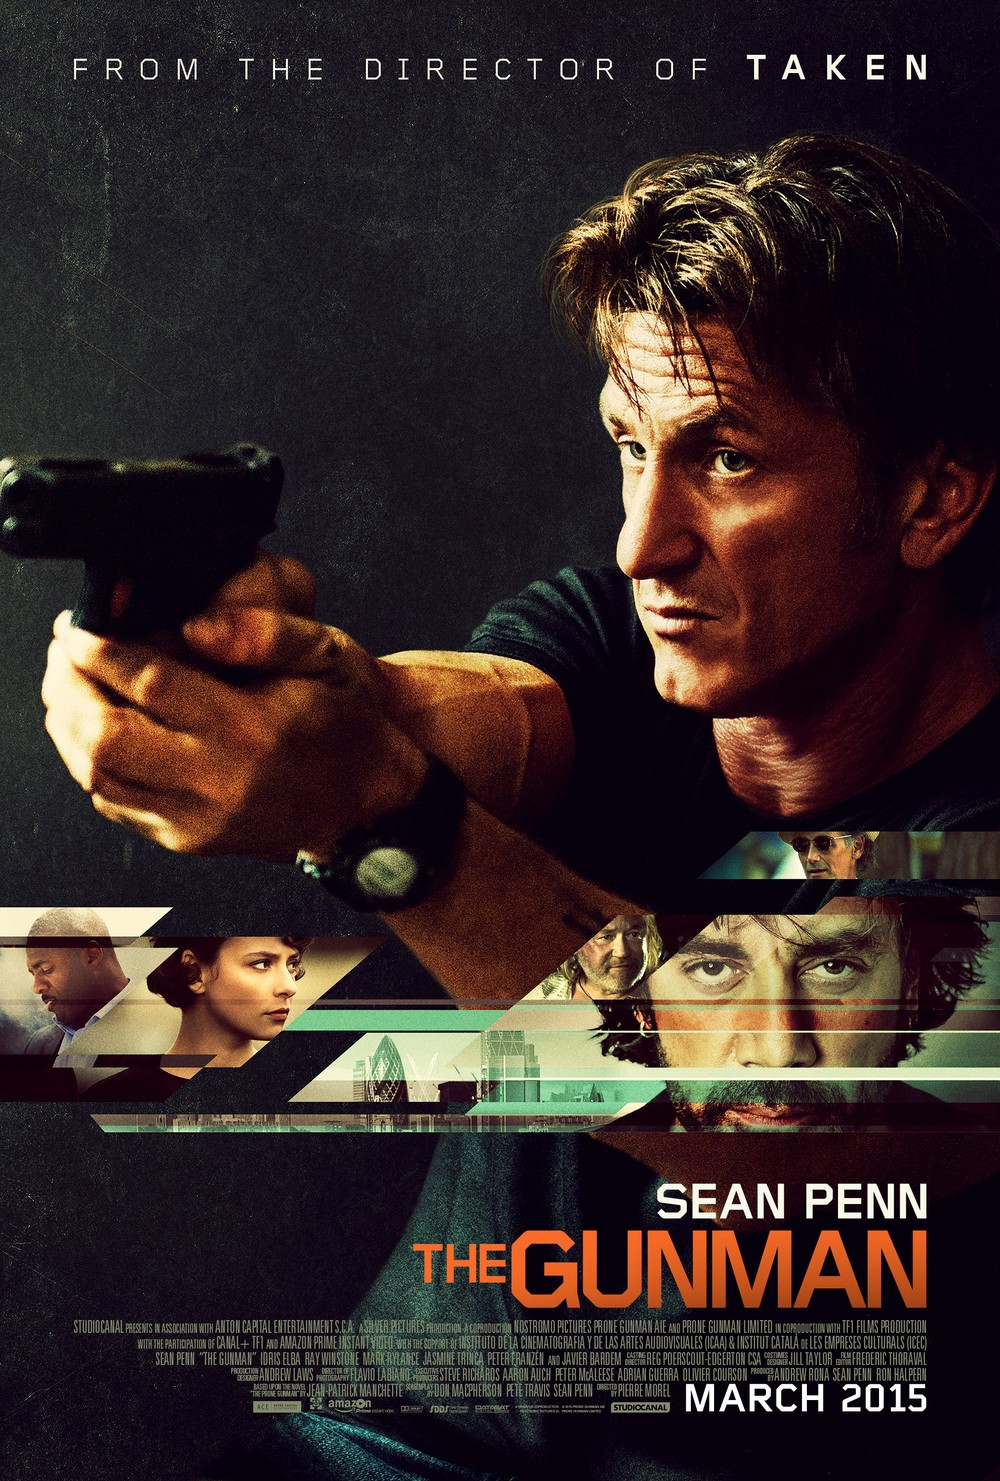 The-Gunman-Final-Int-1-sheet-High-Res.jpg